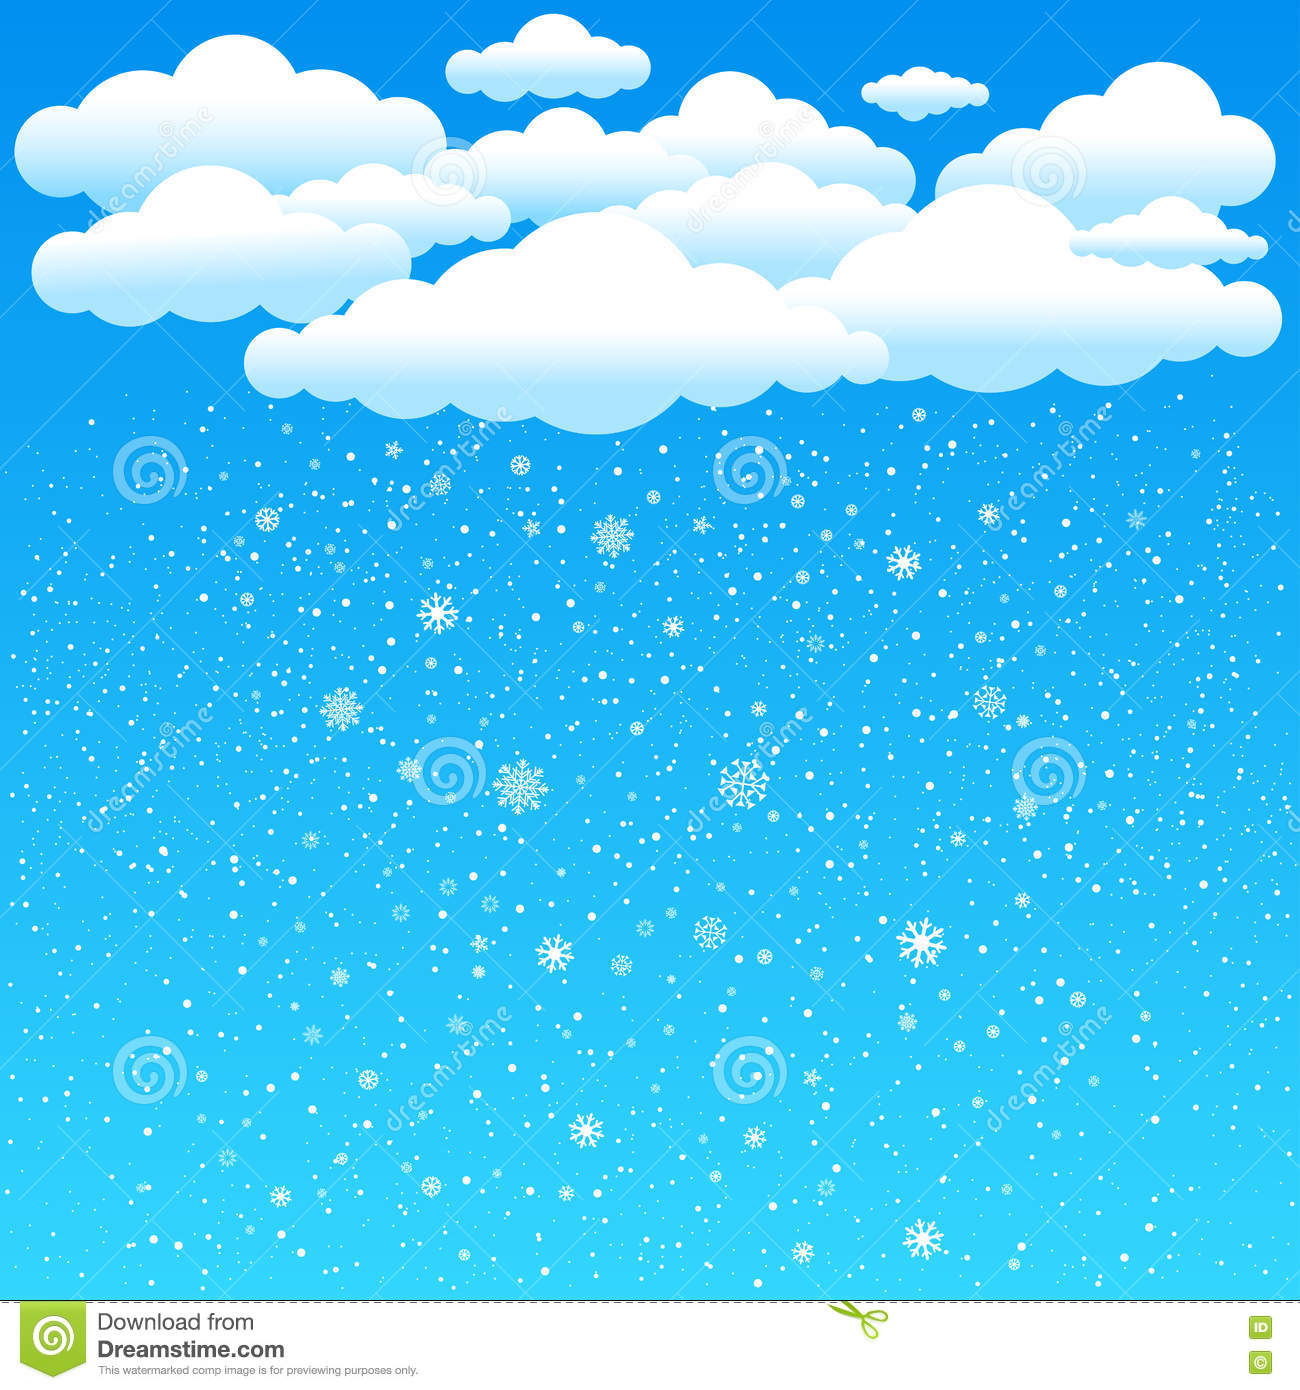 Cartoon Clouds Snow Falls Stock Vector Illustration Of Background 81520261